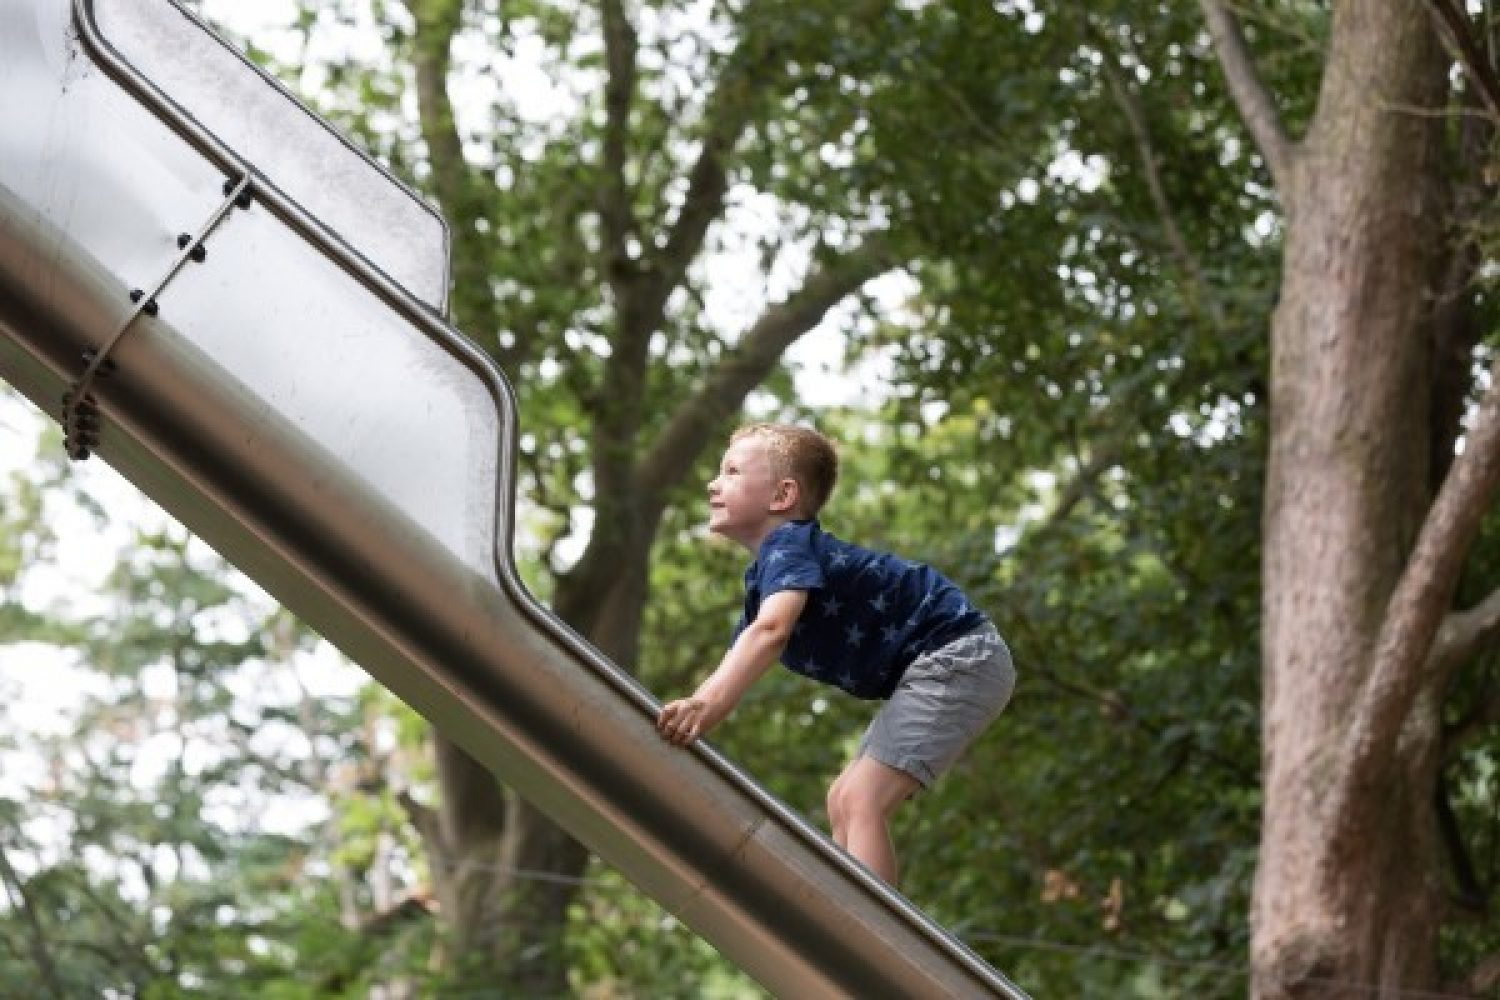 A boy climbs up a metal slide